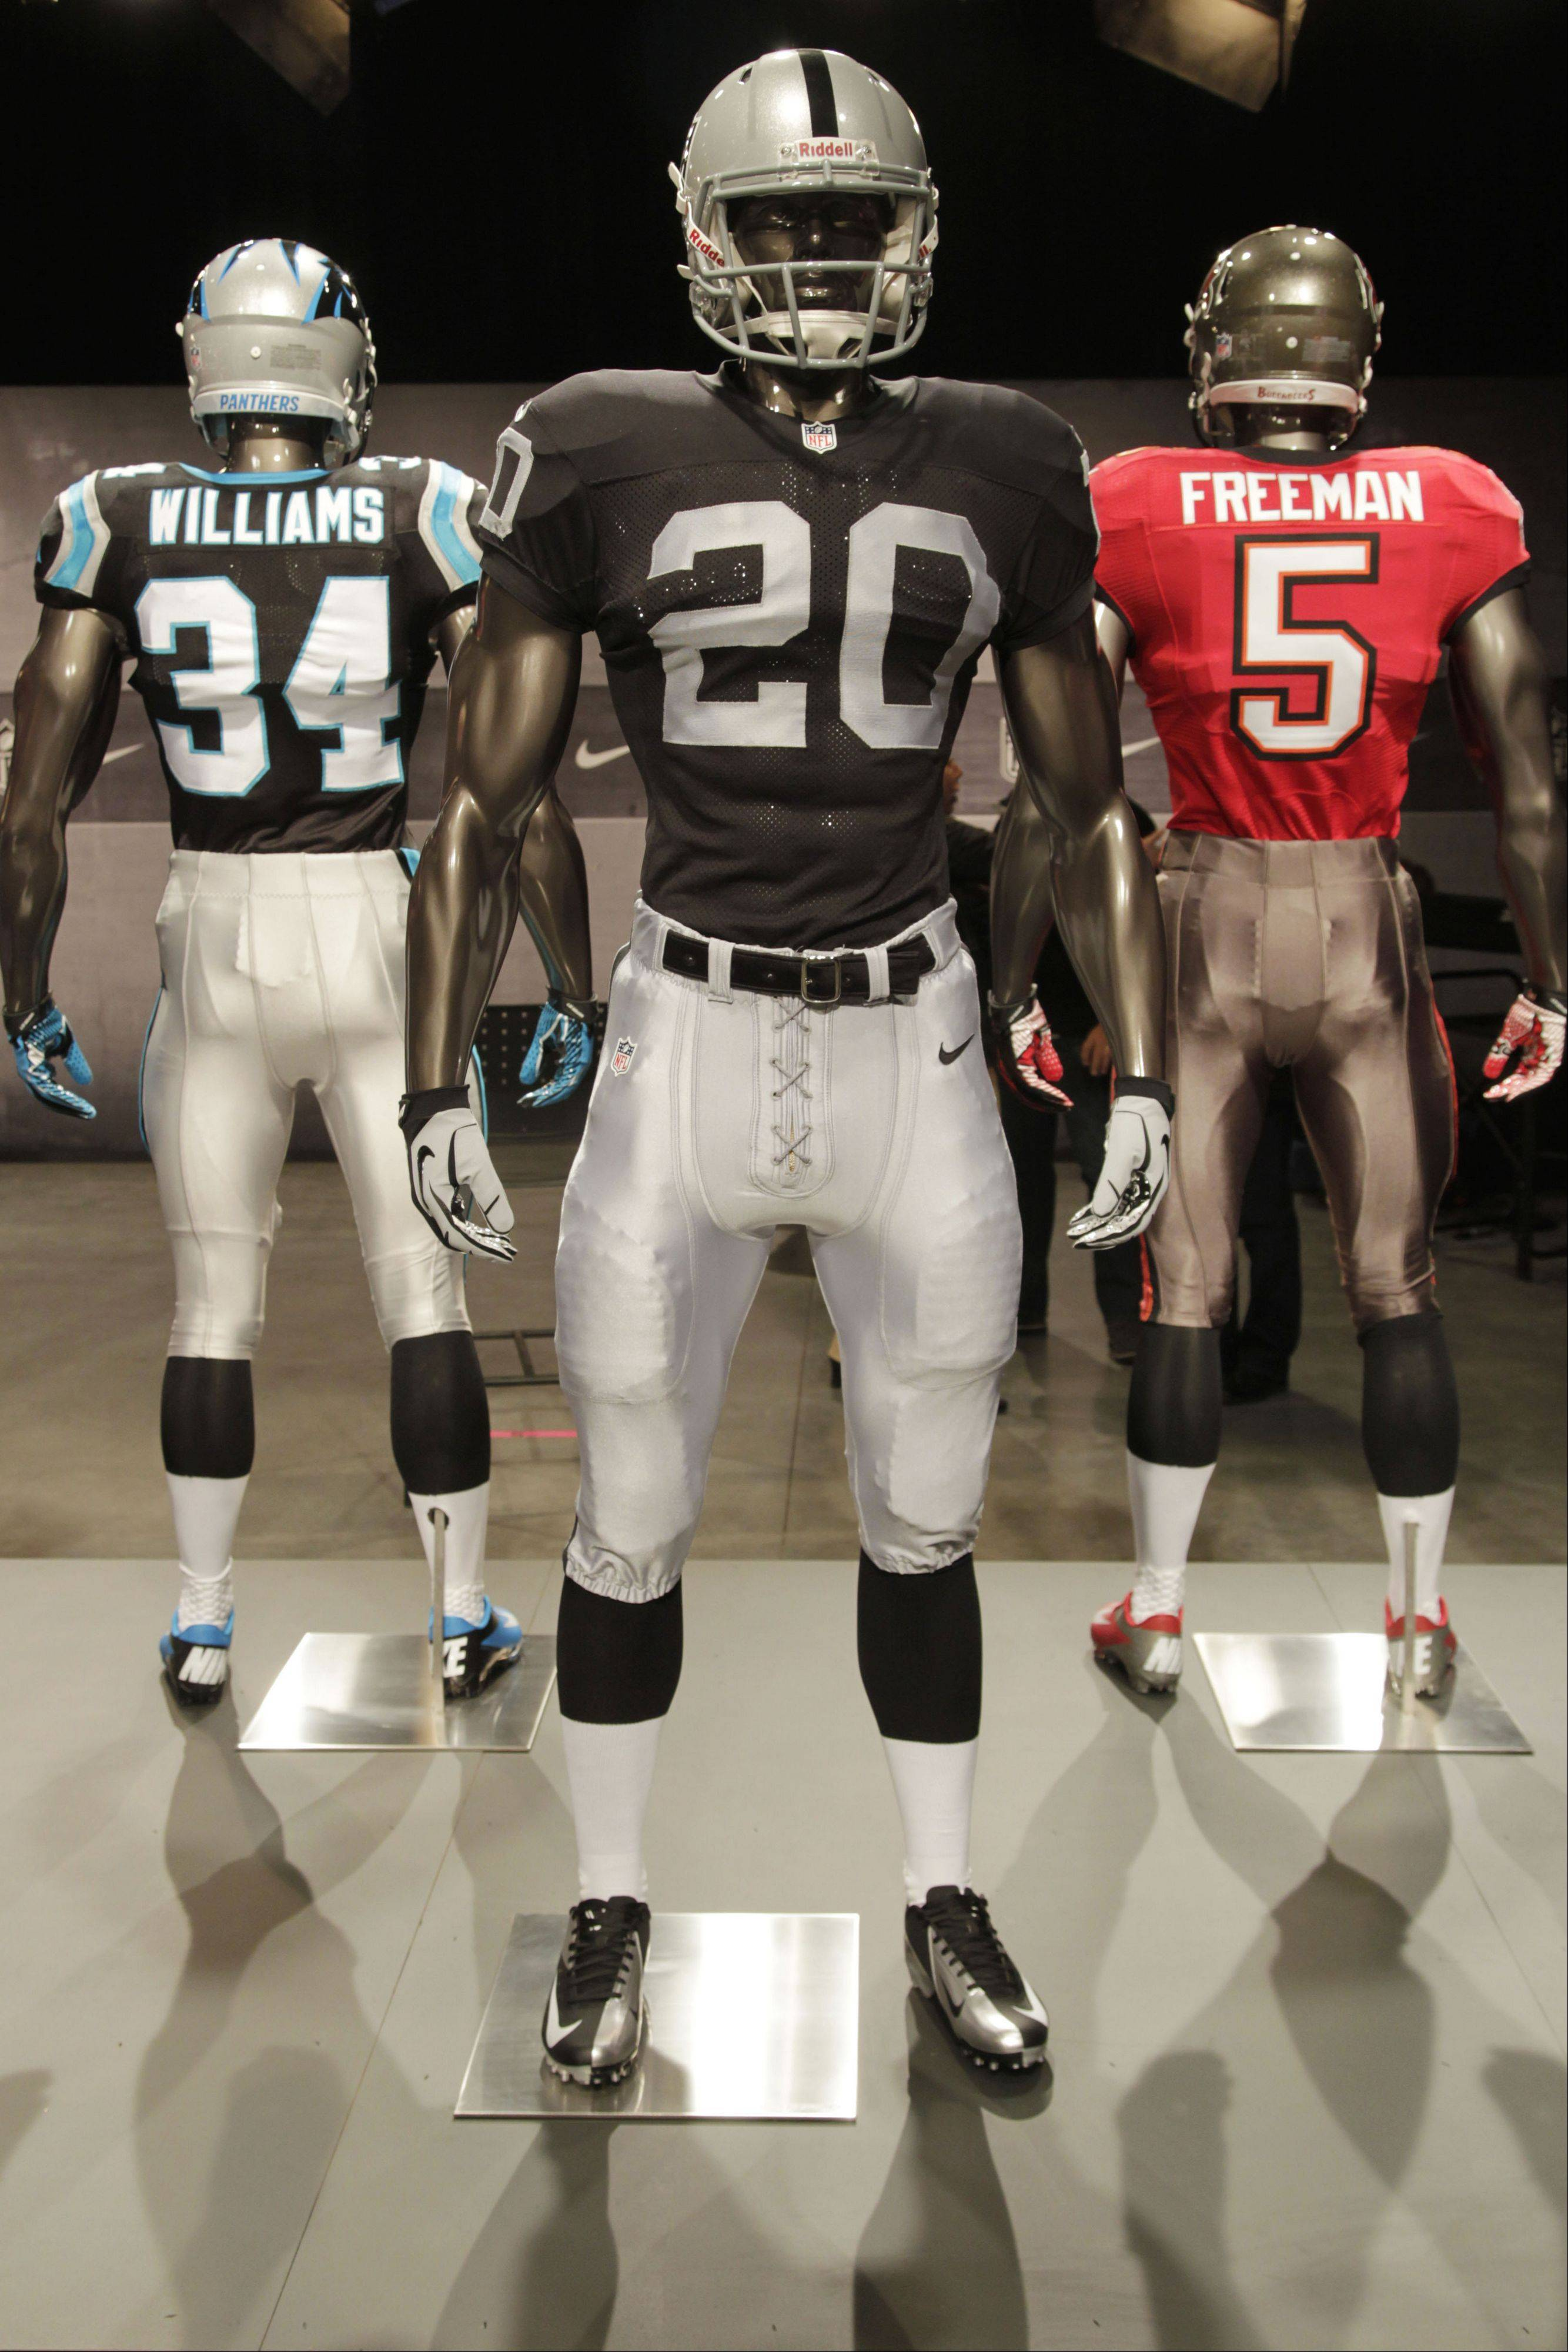 The new Oakland Raiders uniform is displayed on a mannequin in New York, Tuesday, April 3, 2012. NFL has unveiled its new sleek uniforms designed by Nike. While most of the new uniforms are not very different visually, they all are made with new technology that make them lighter, dryer and more comfortable.